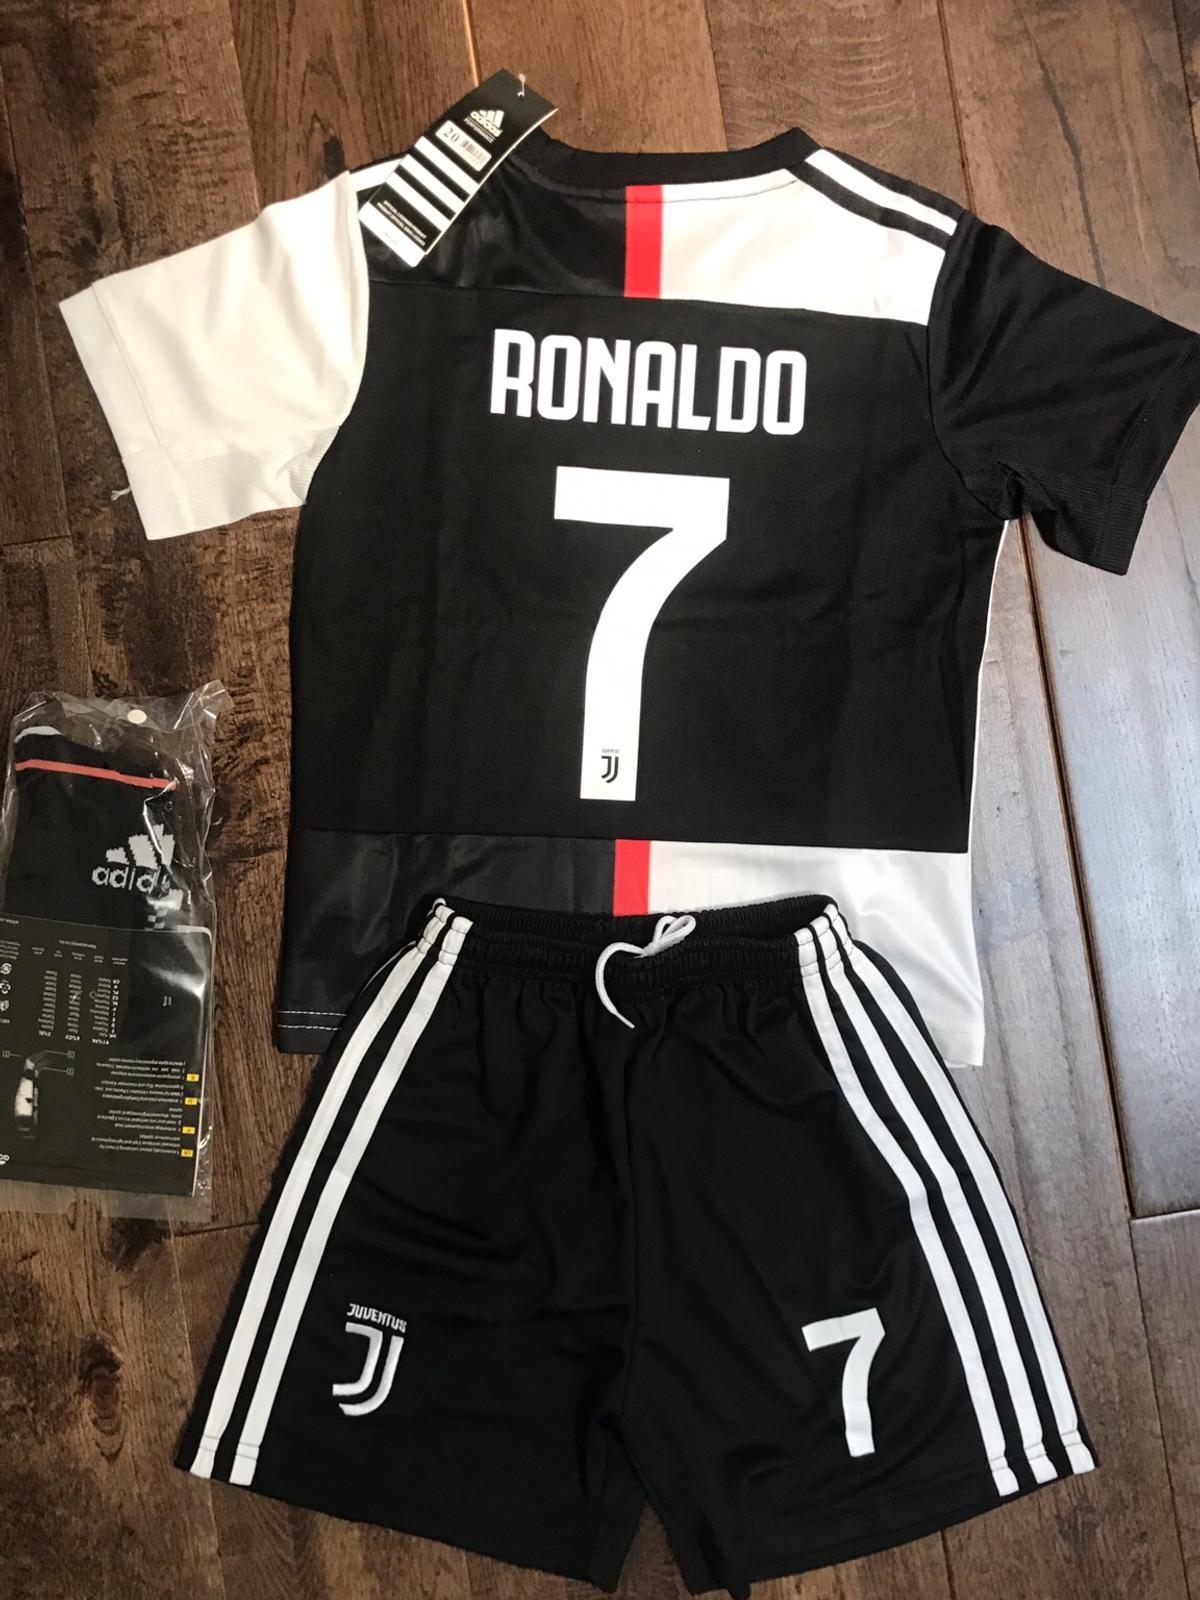 newest a40f5 68e5b Juventus New Season 19/20 Ronaldo Kids Kit in BB1 Blackburn ...